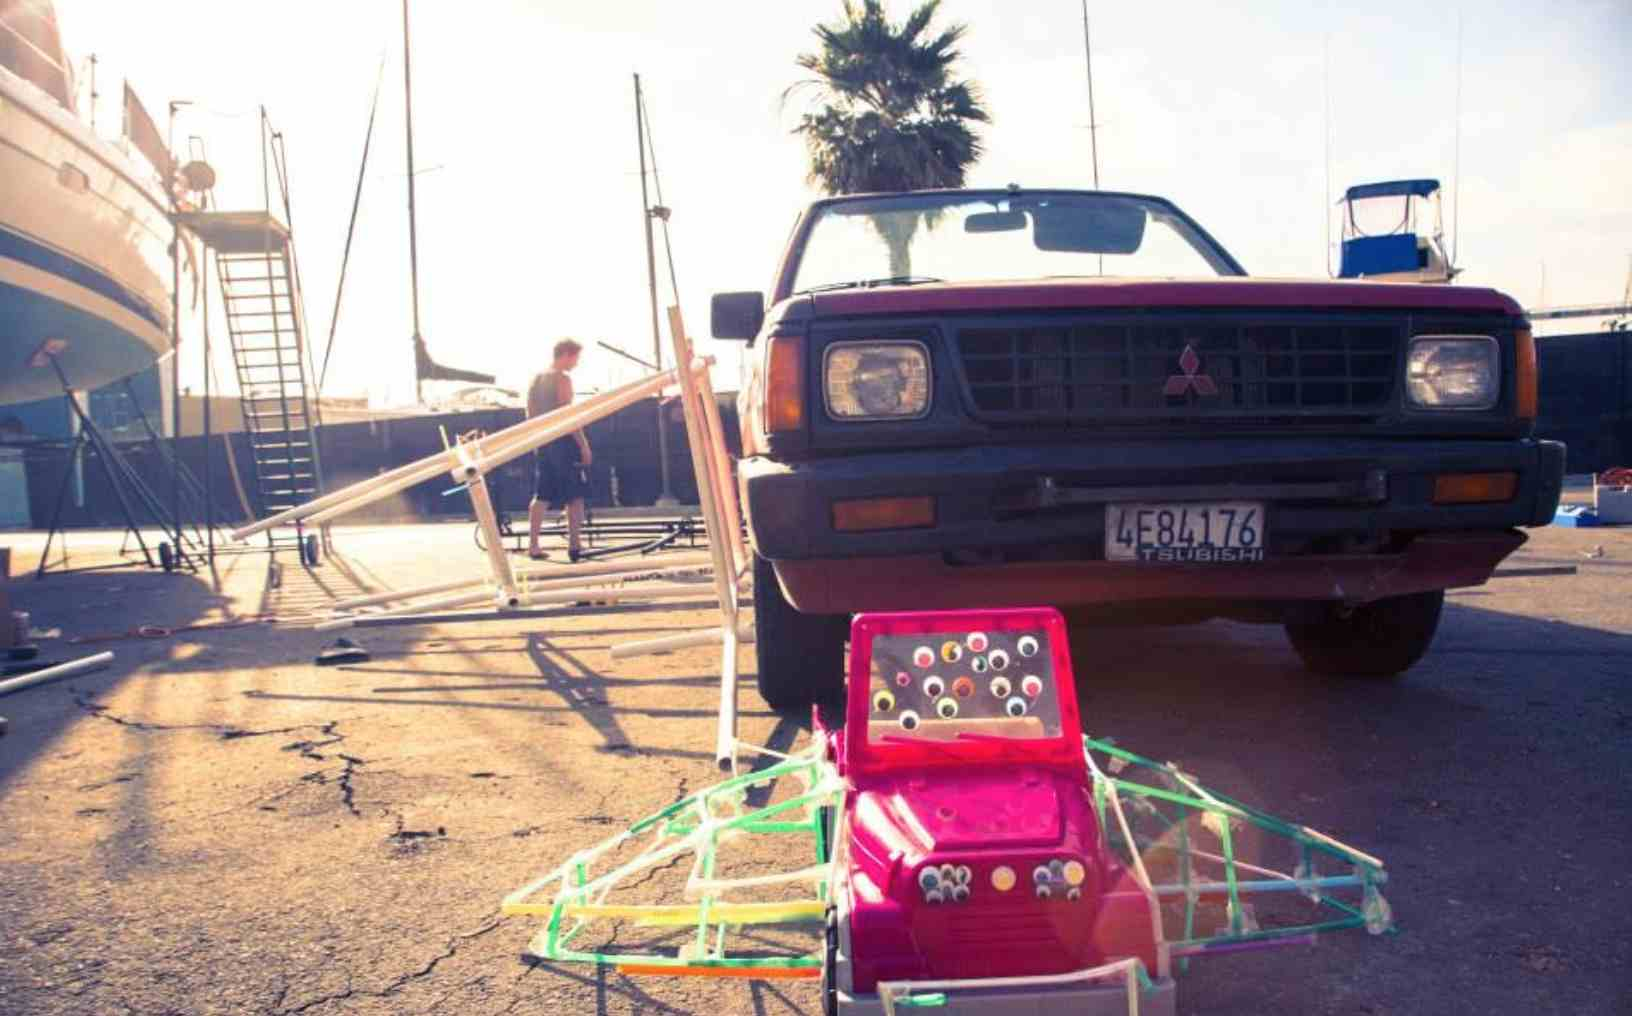 Screen Shot 2013-07-14 at 1.27.29 AM.jpg